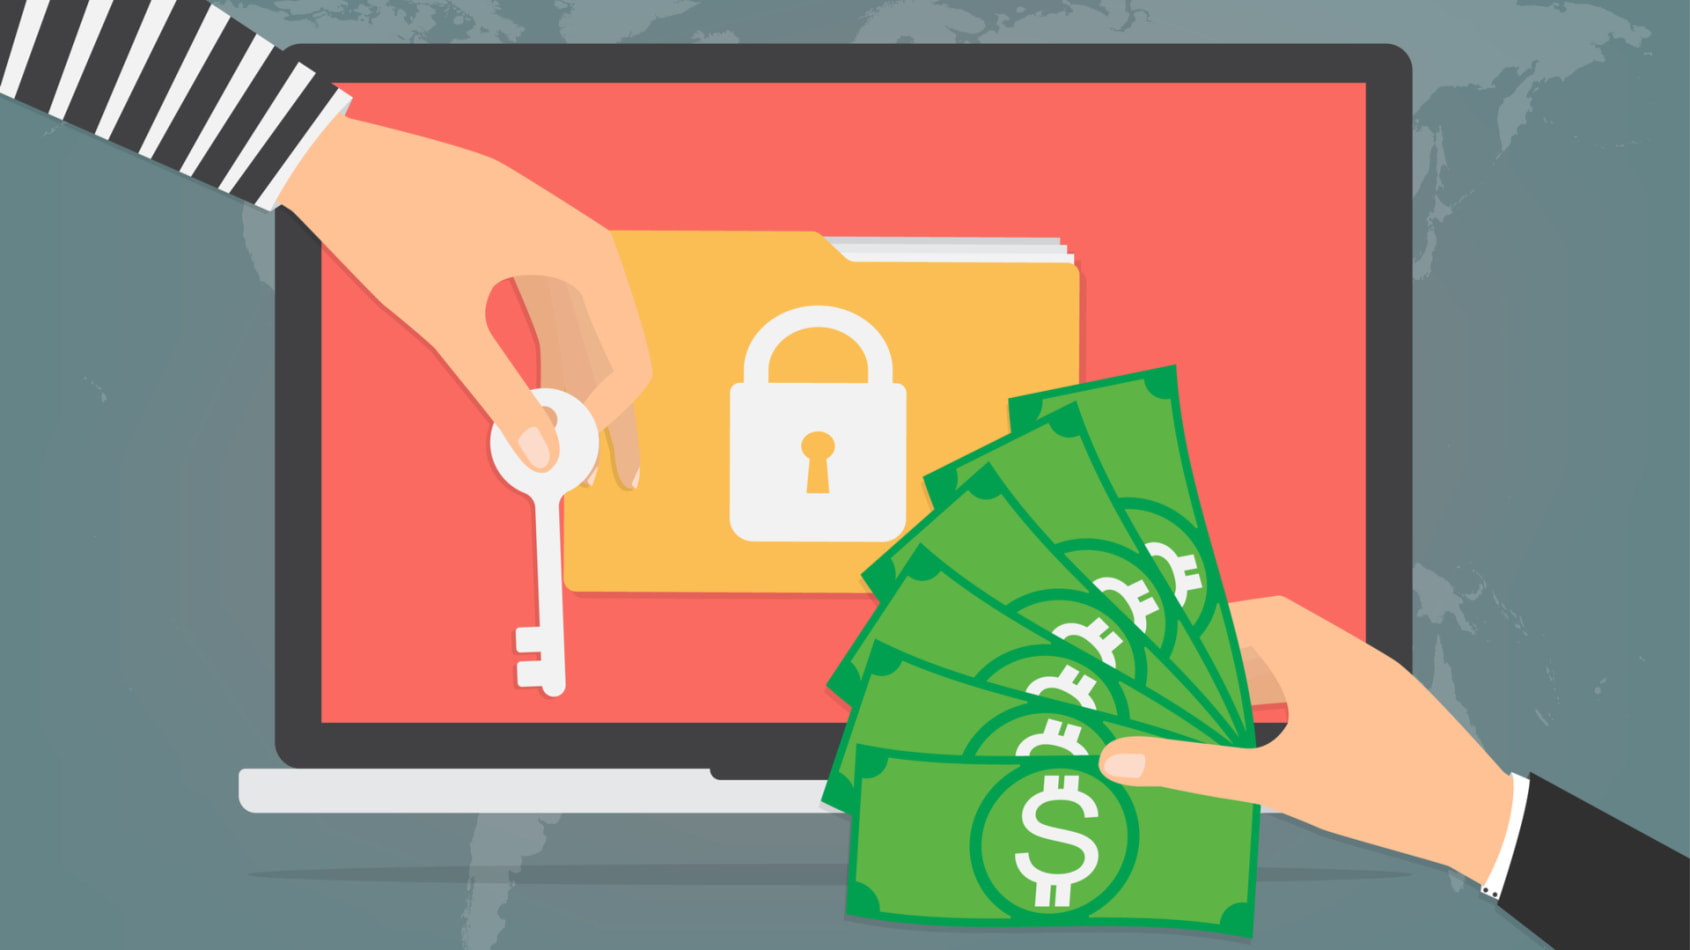 Professor Kevin Curran, Ulster University in an interview with ITPro on the motivation behind ransomware, the importance of backups and simple methods to help prevent being attacked.